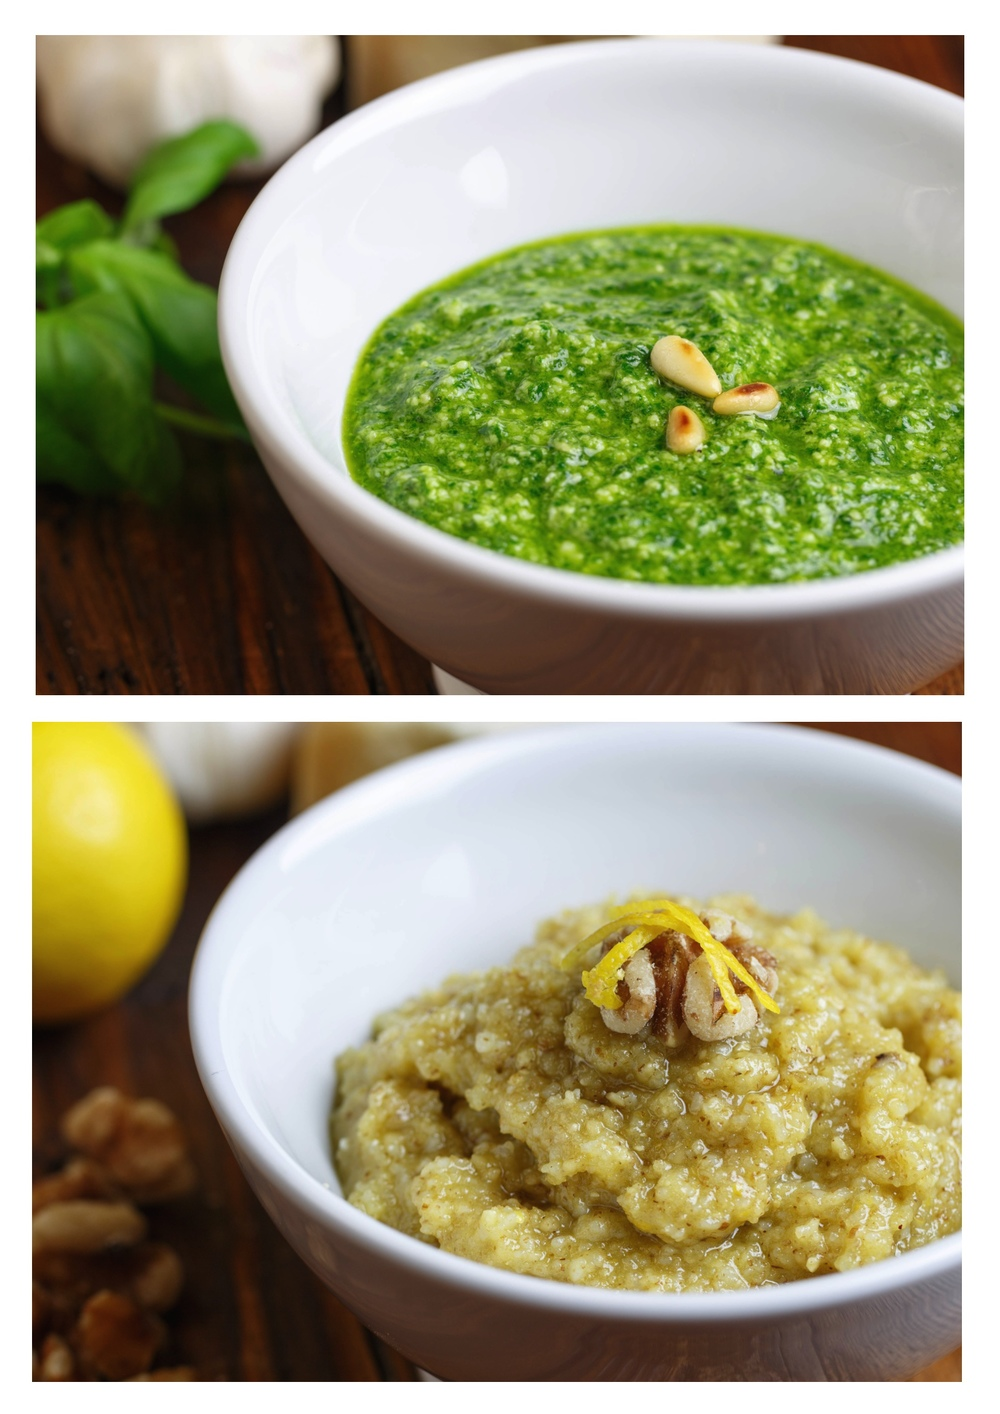 Pesto - Classic and Walnut Pesto